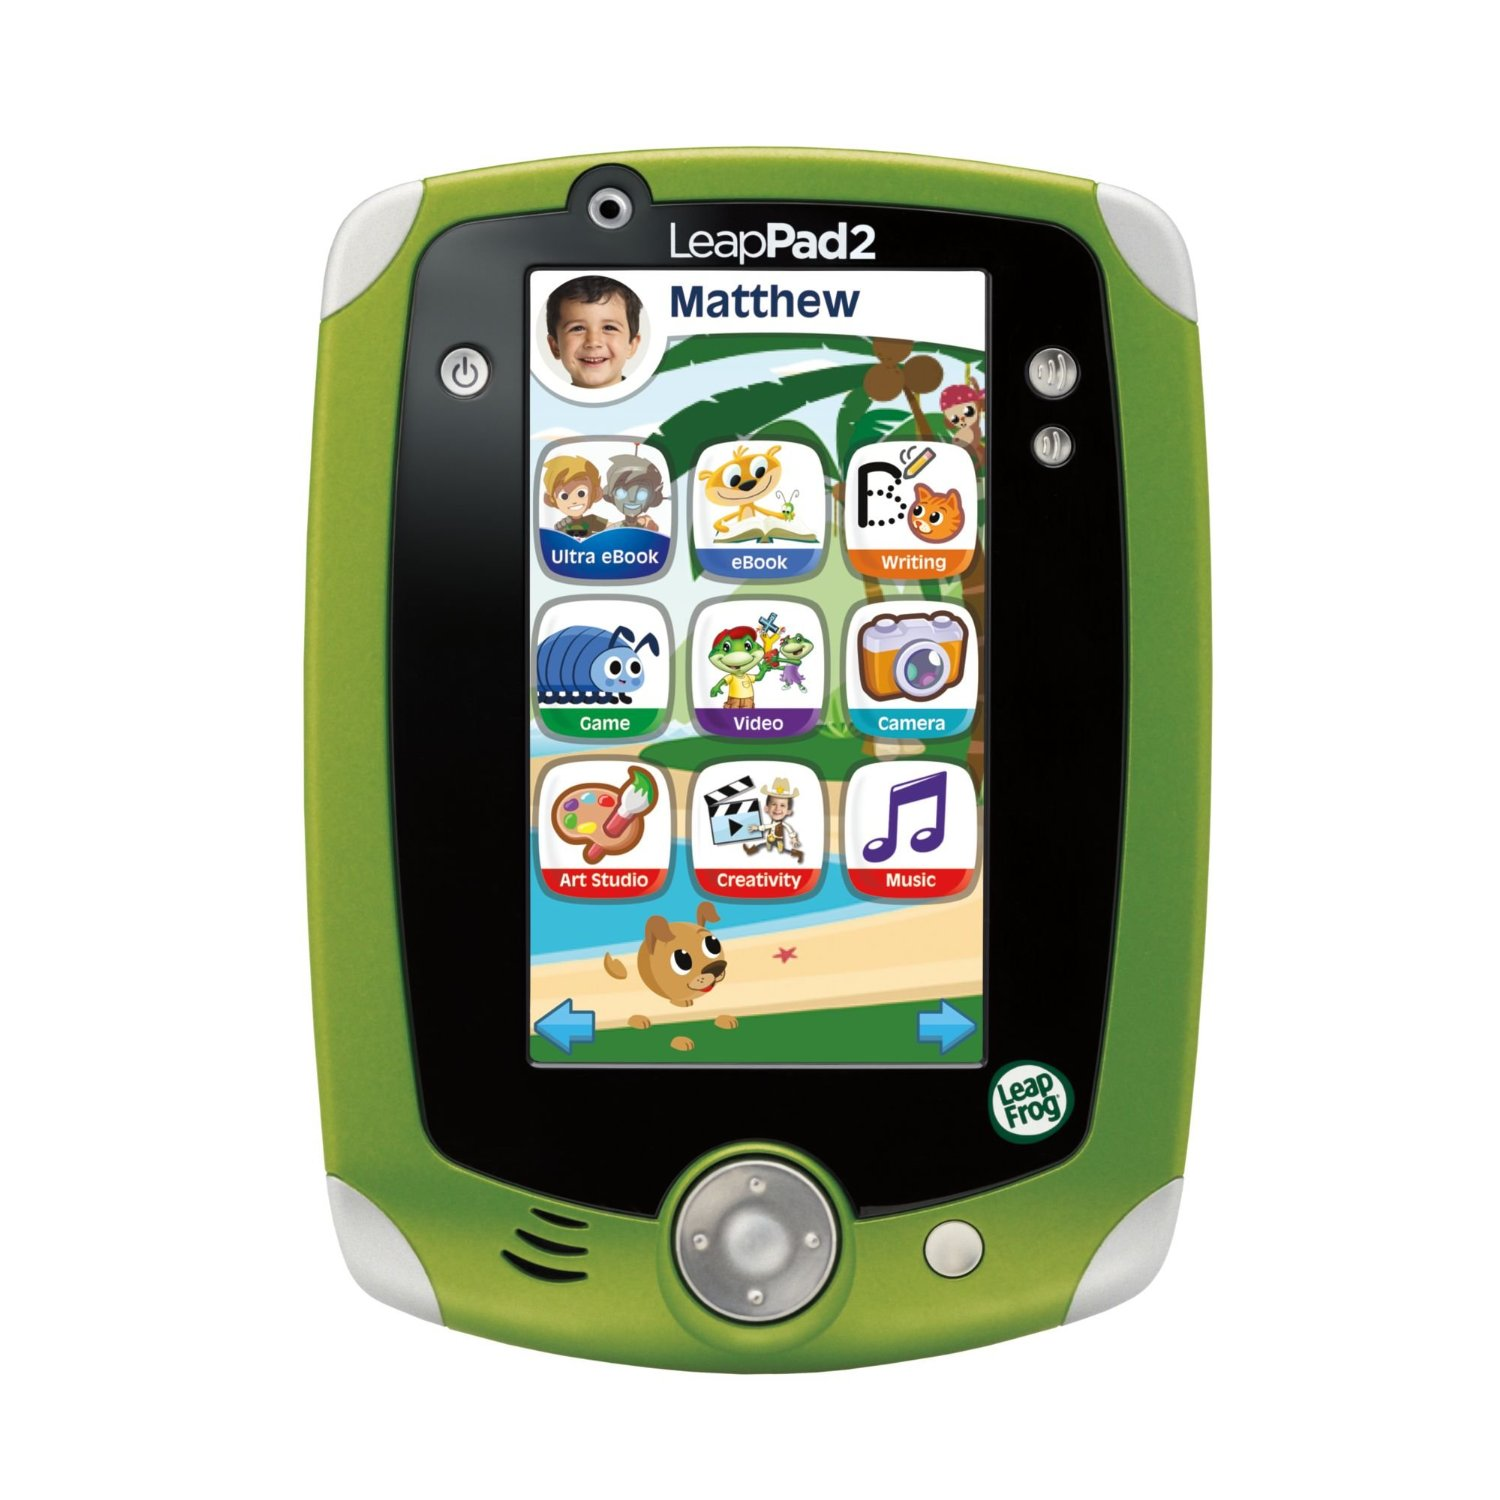 Leapfrog | leappad2 power learning tablet bundle free $20 app card $89.